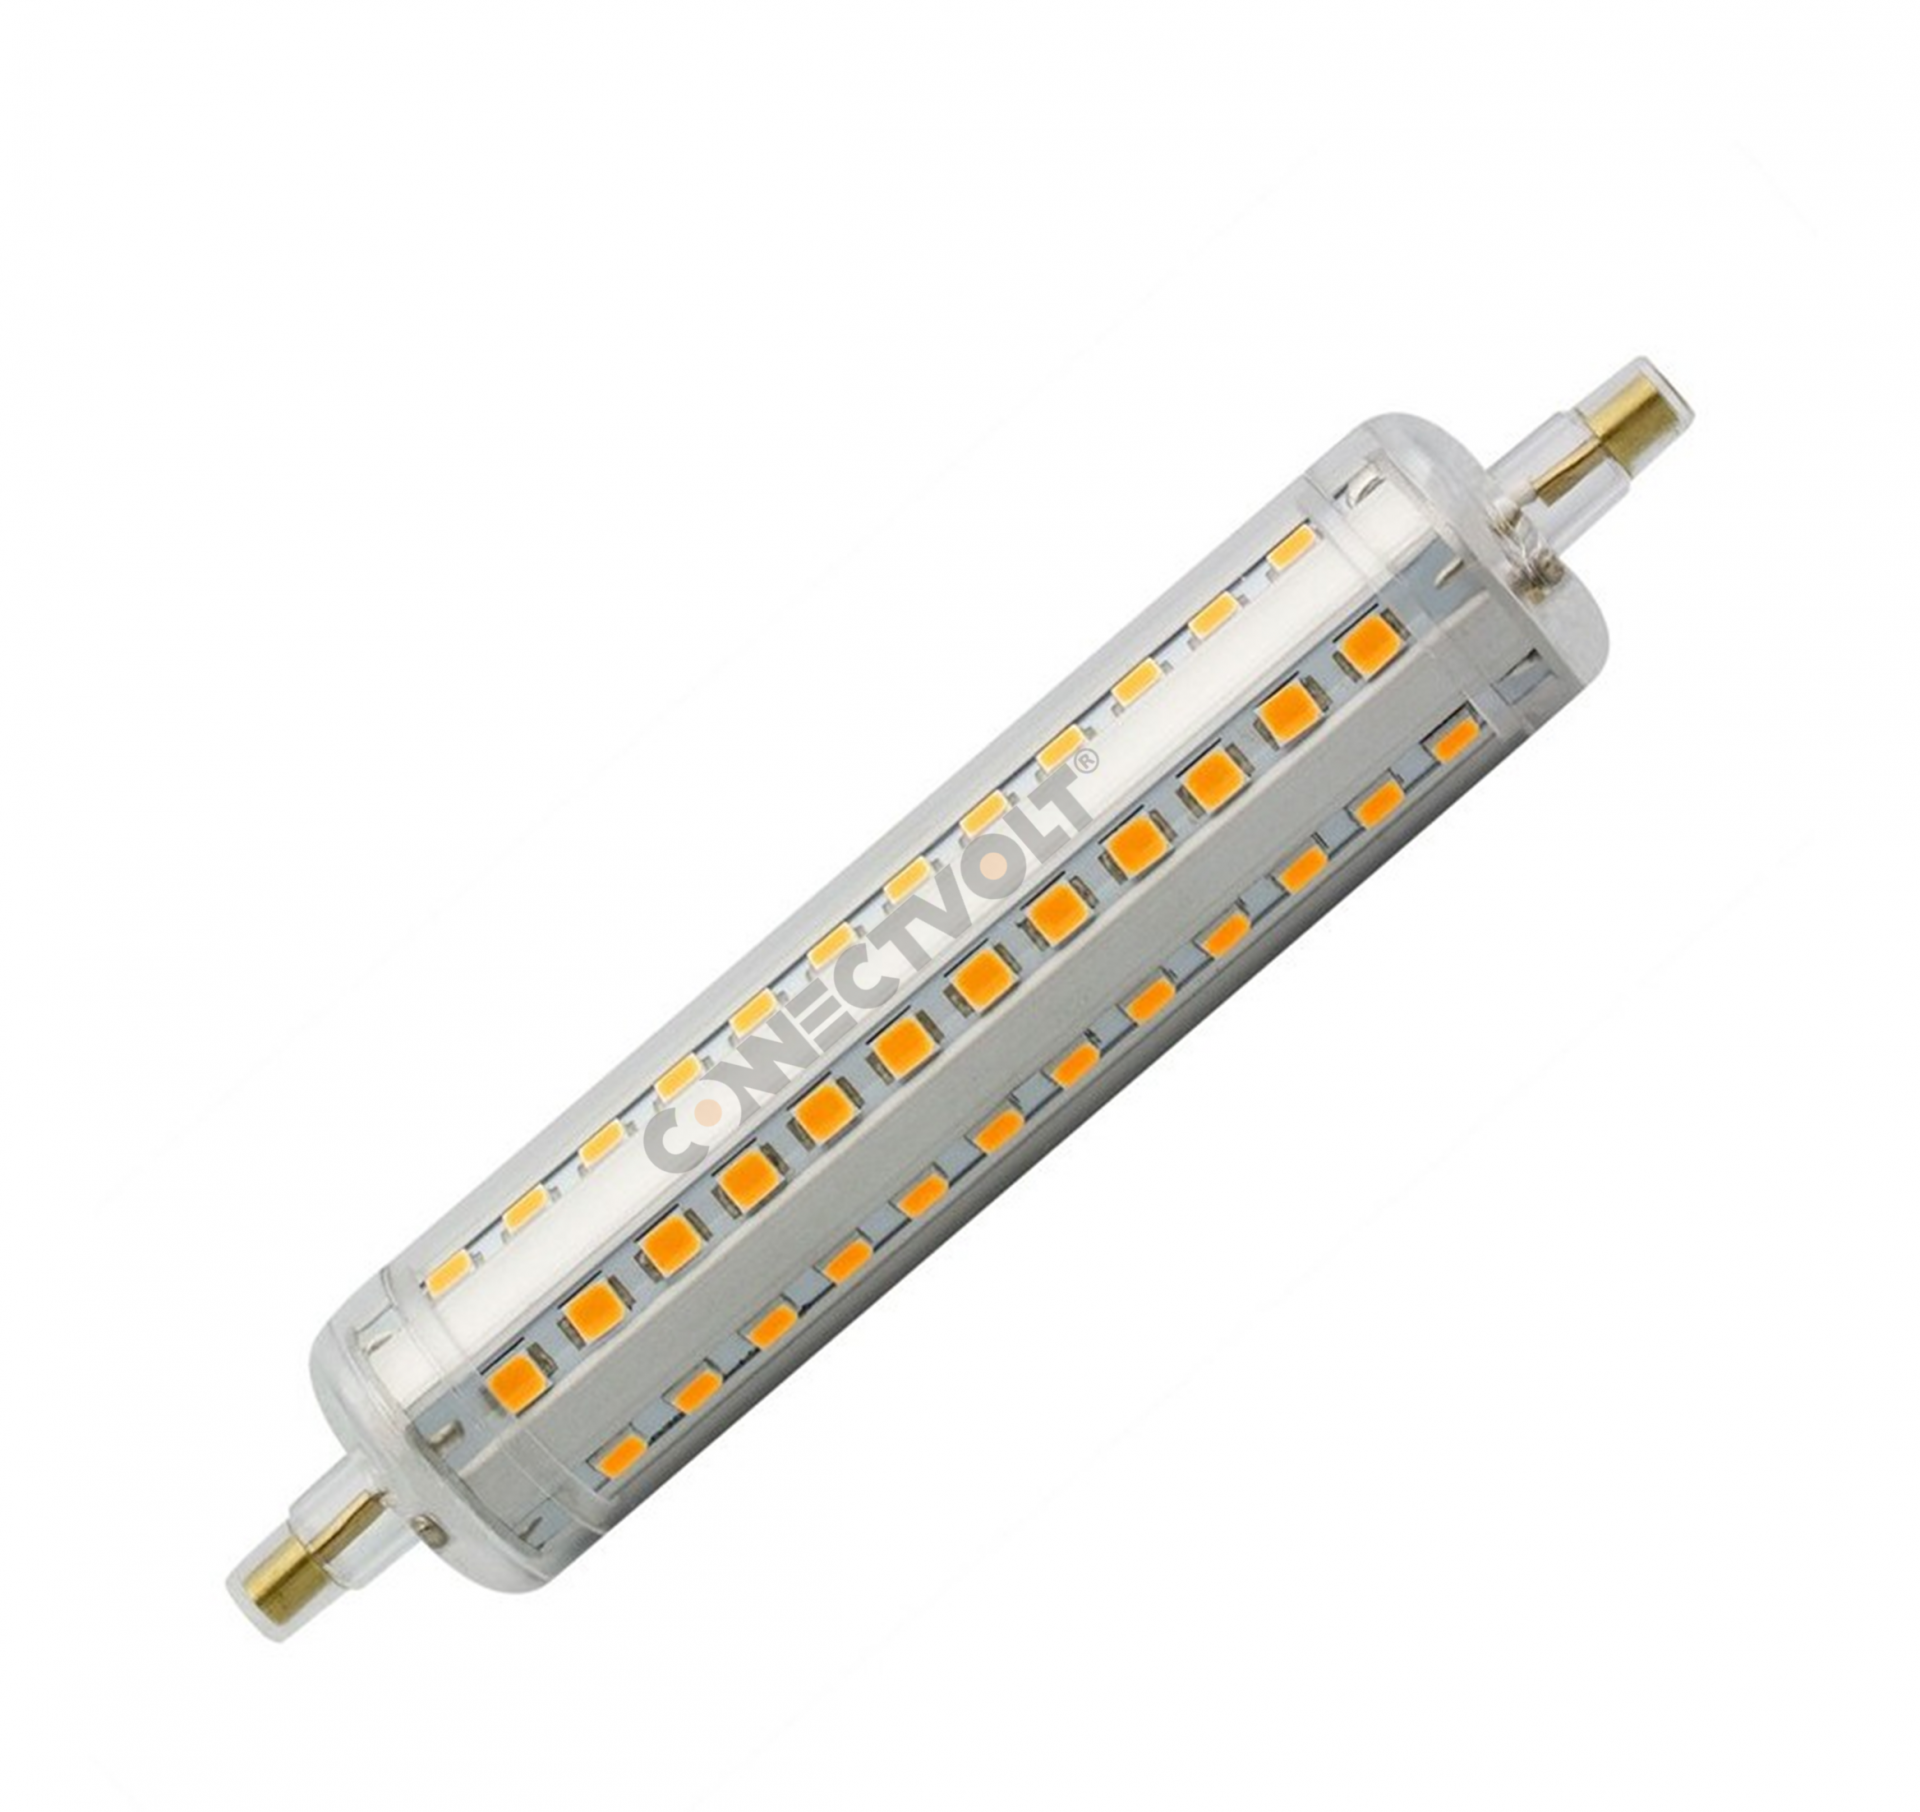 LED Lâmpada R7S 15W 2700K 135mm